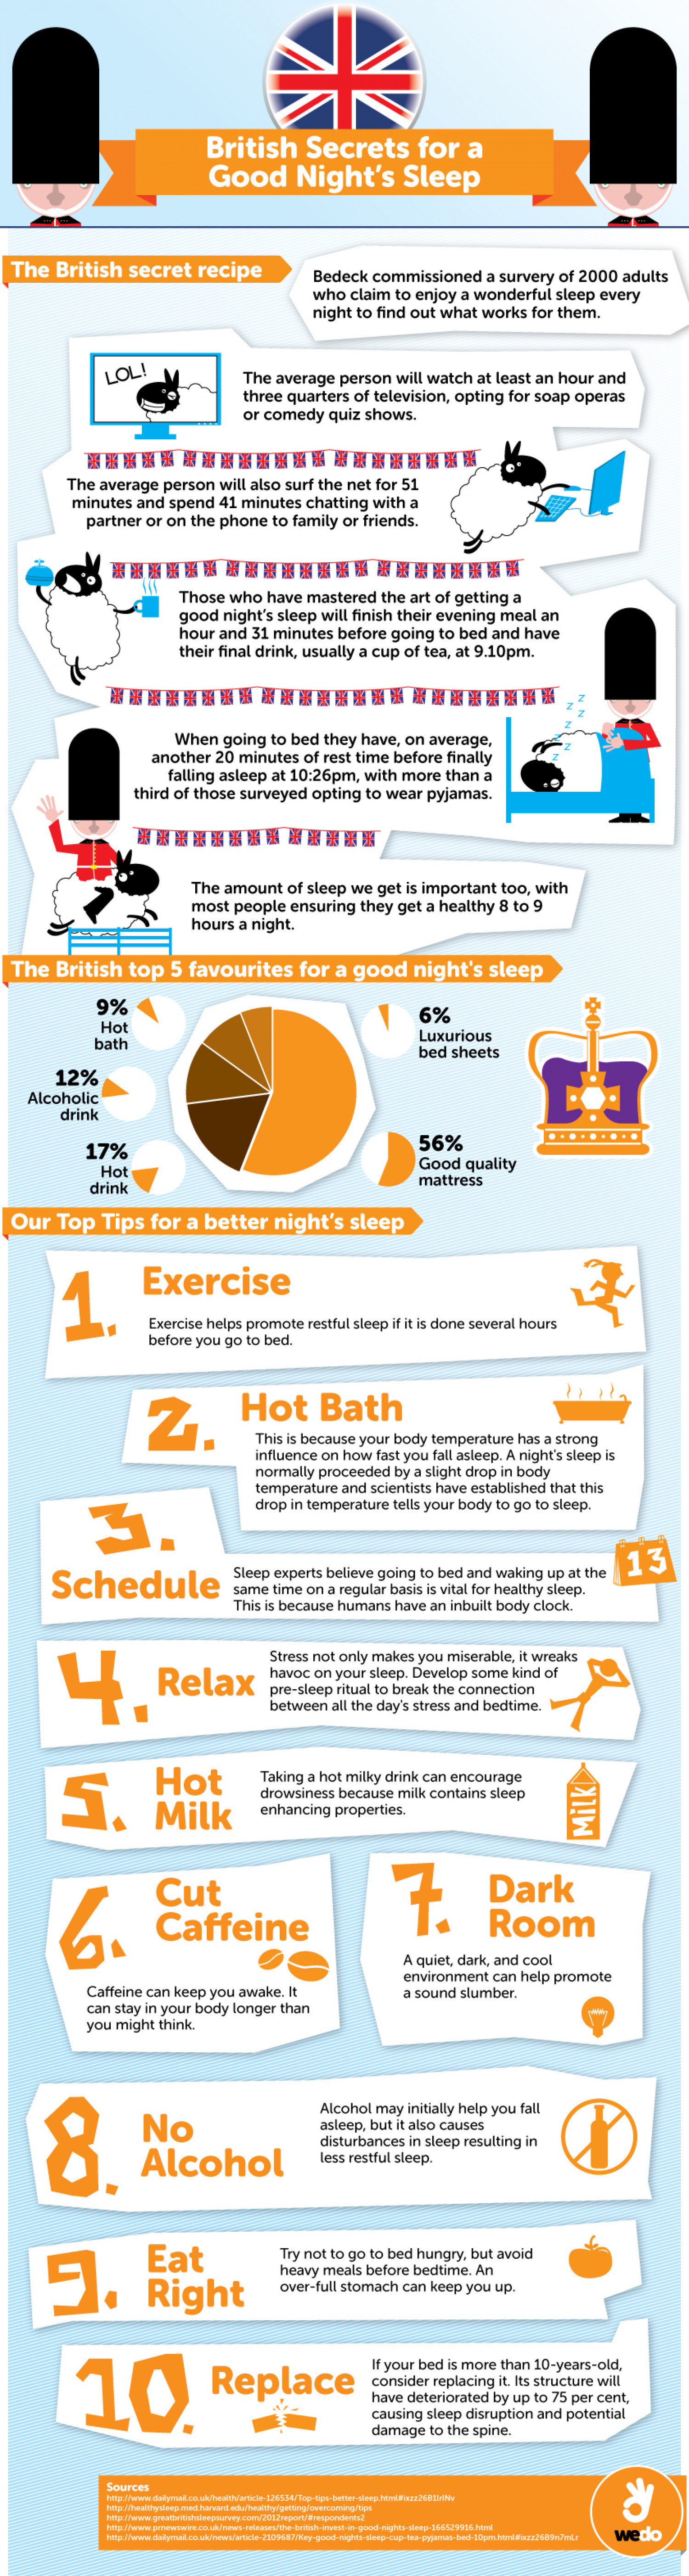 The British Secret for a Good Night's Sleep Infographic